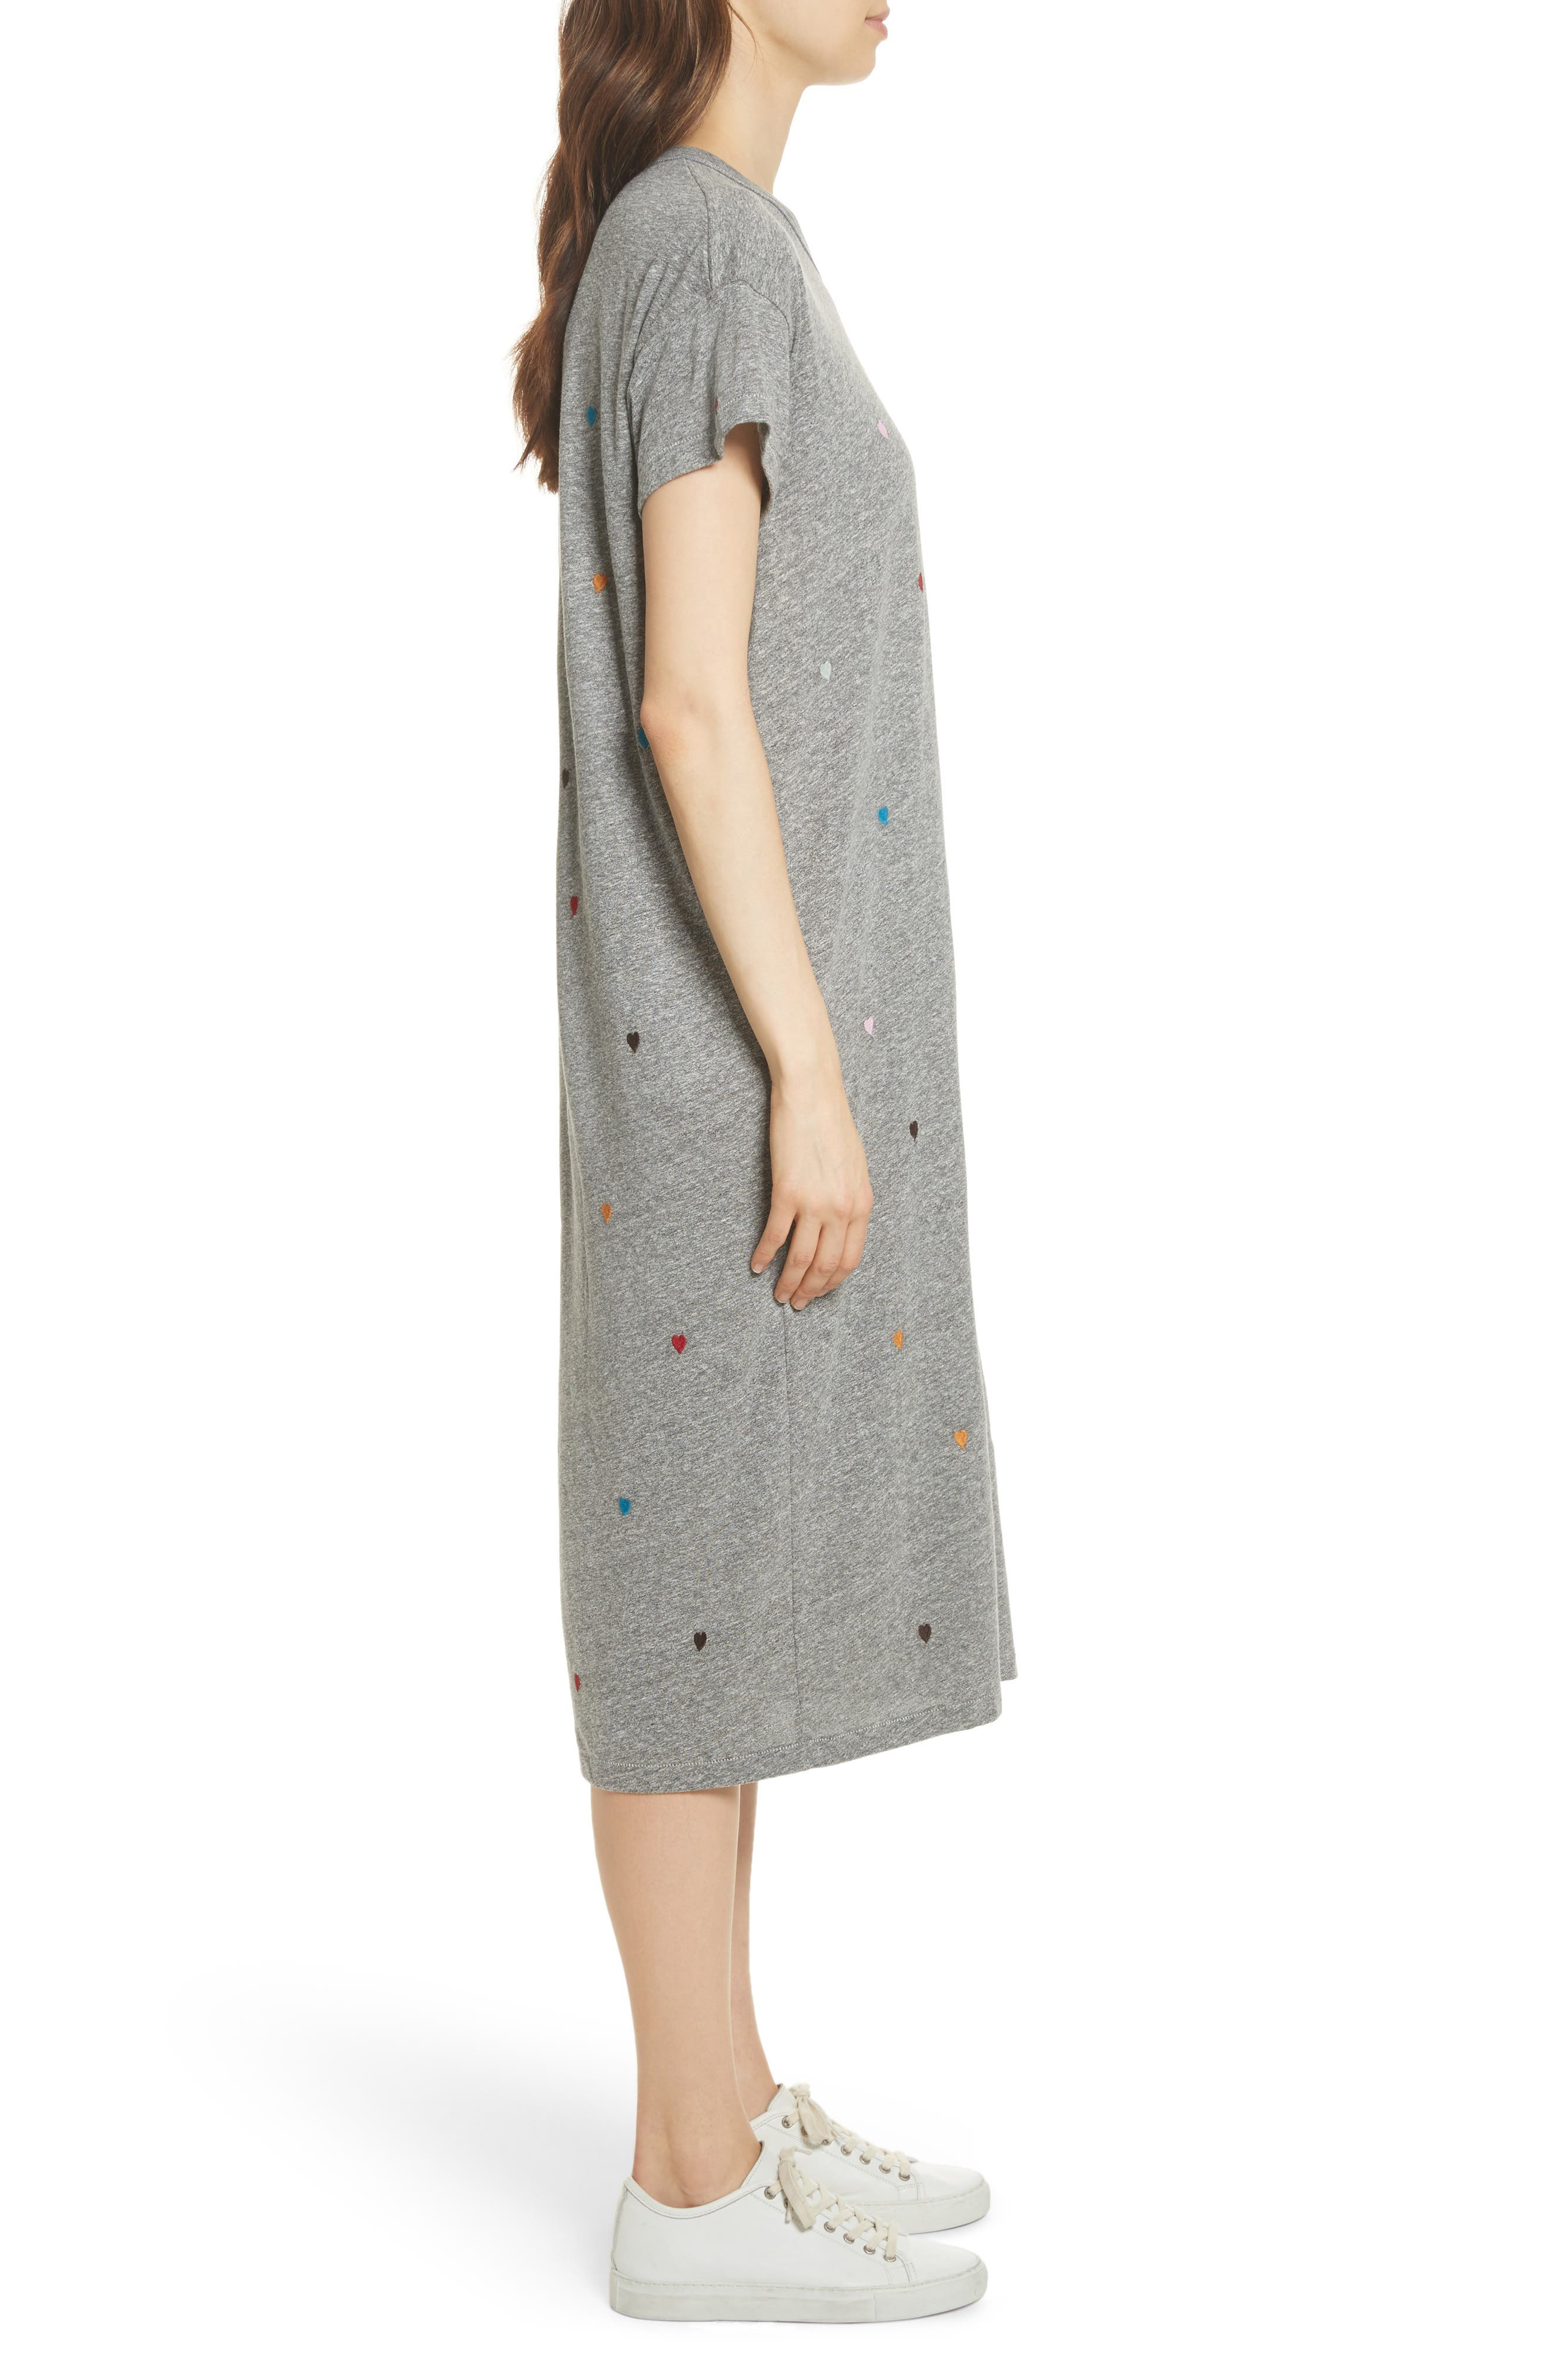 The Boxy Embroidered T-Shirt Dress,                             Alternate thumbnail 3, color,                             Grey/ Heart Embroidery